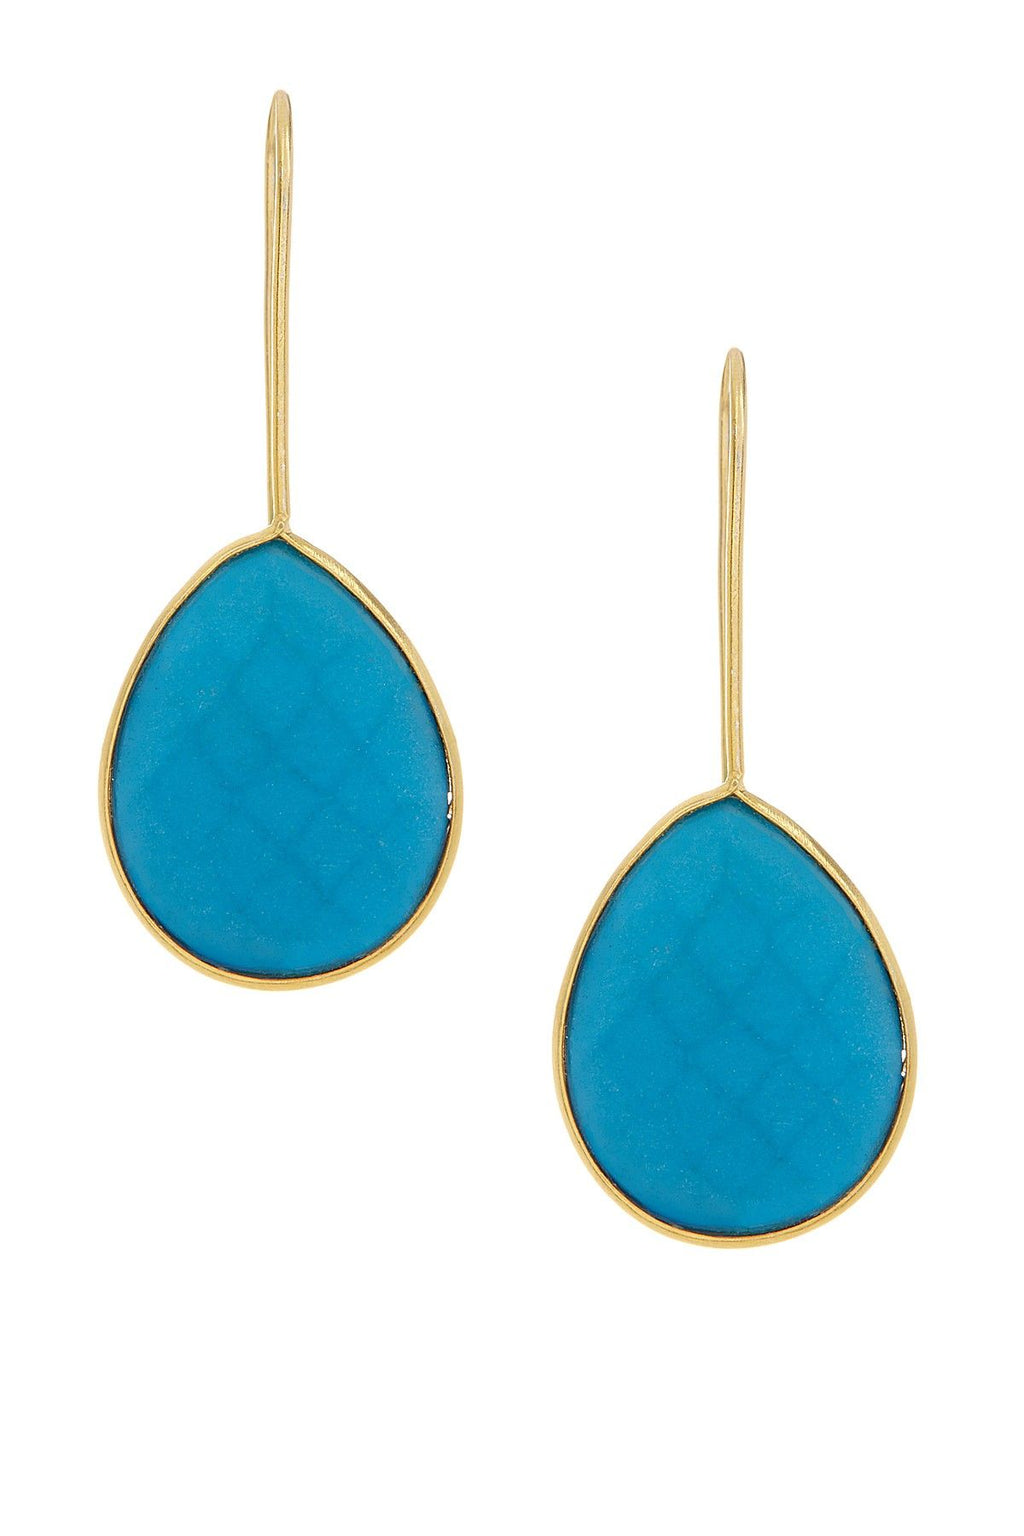 Teardrop Earrings- Turq